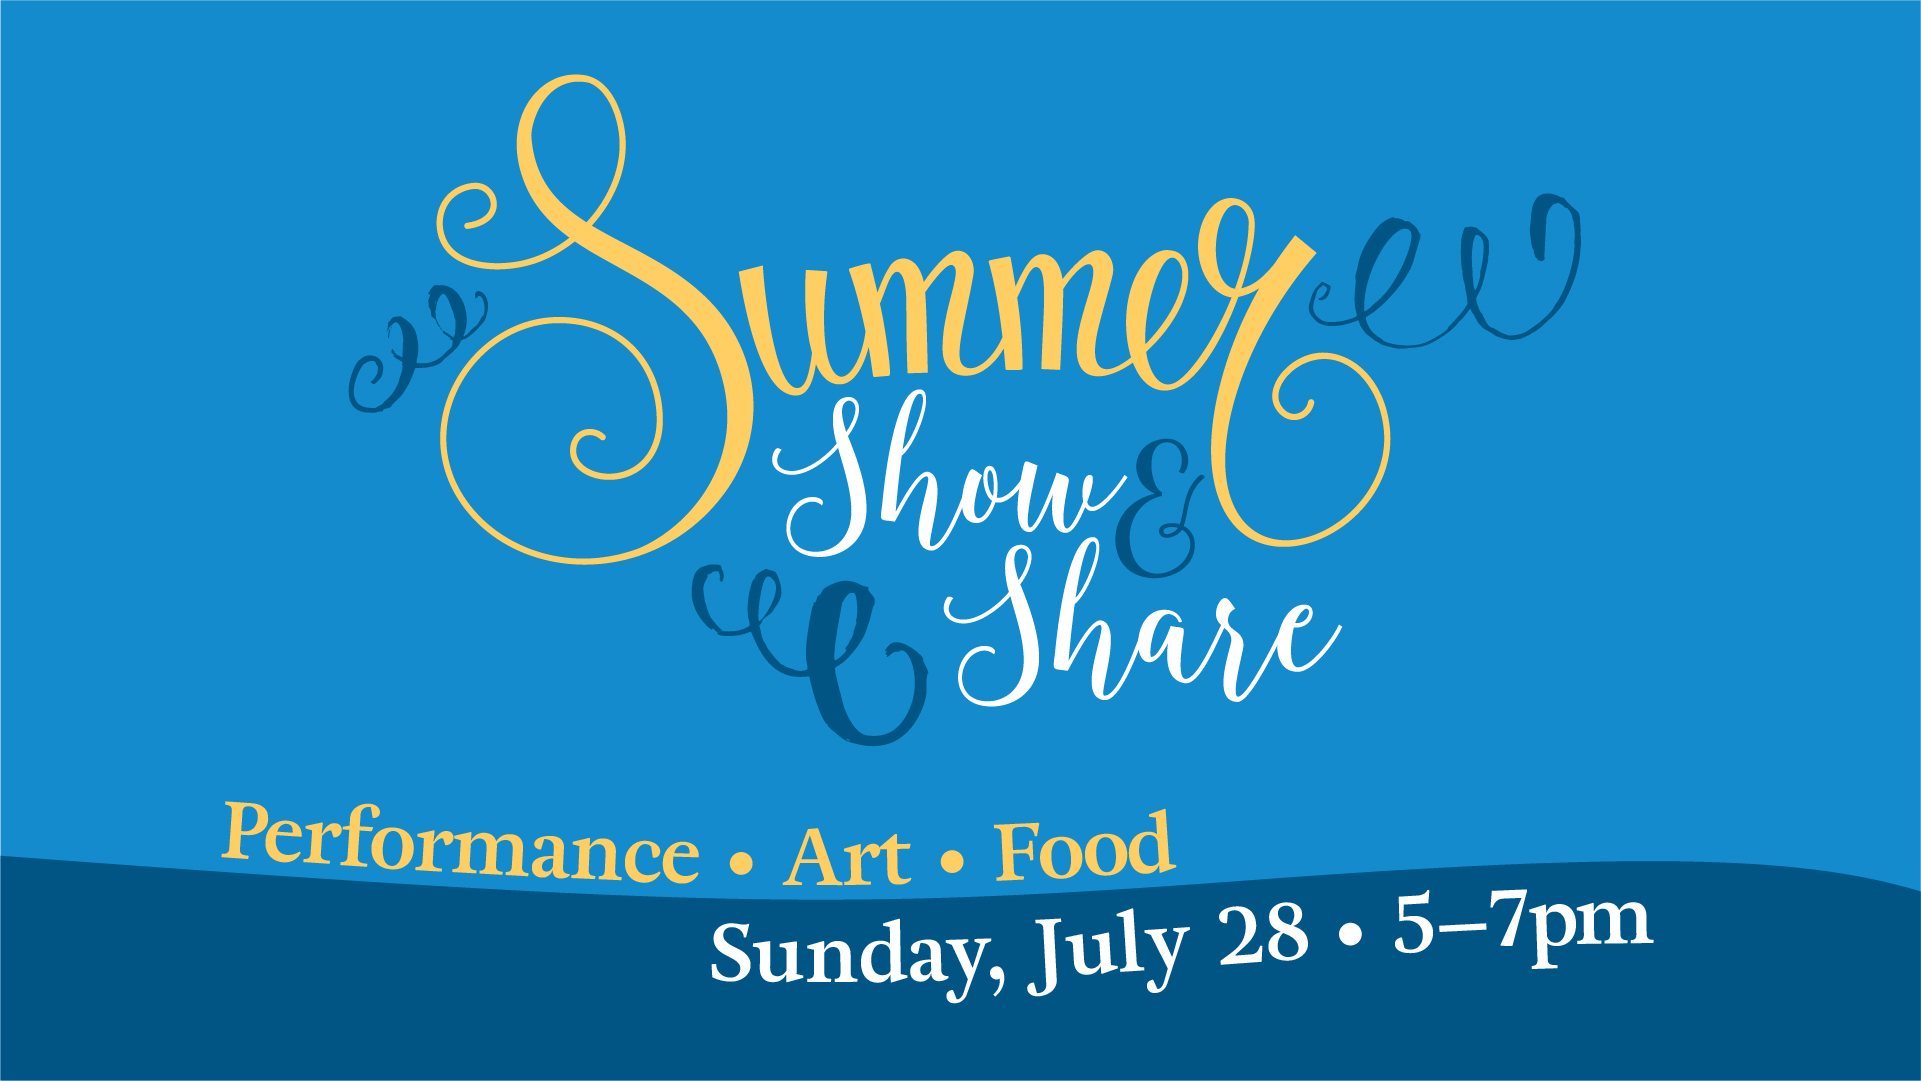 Summer Show and Share 2019